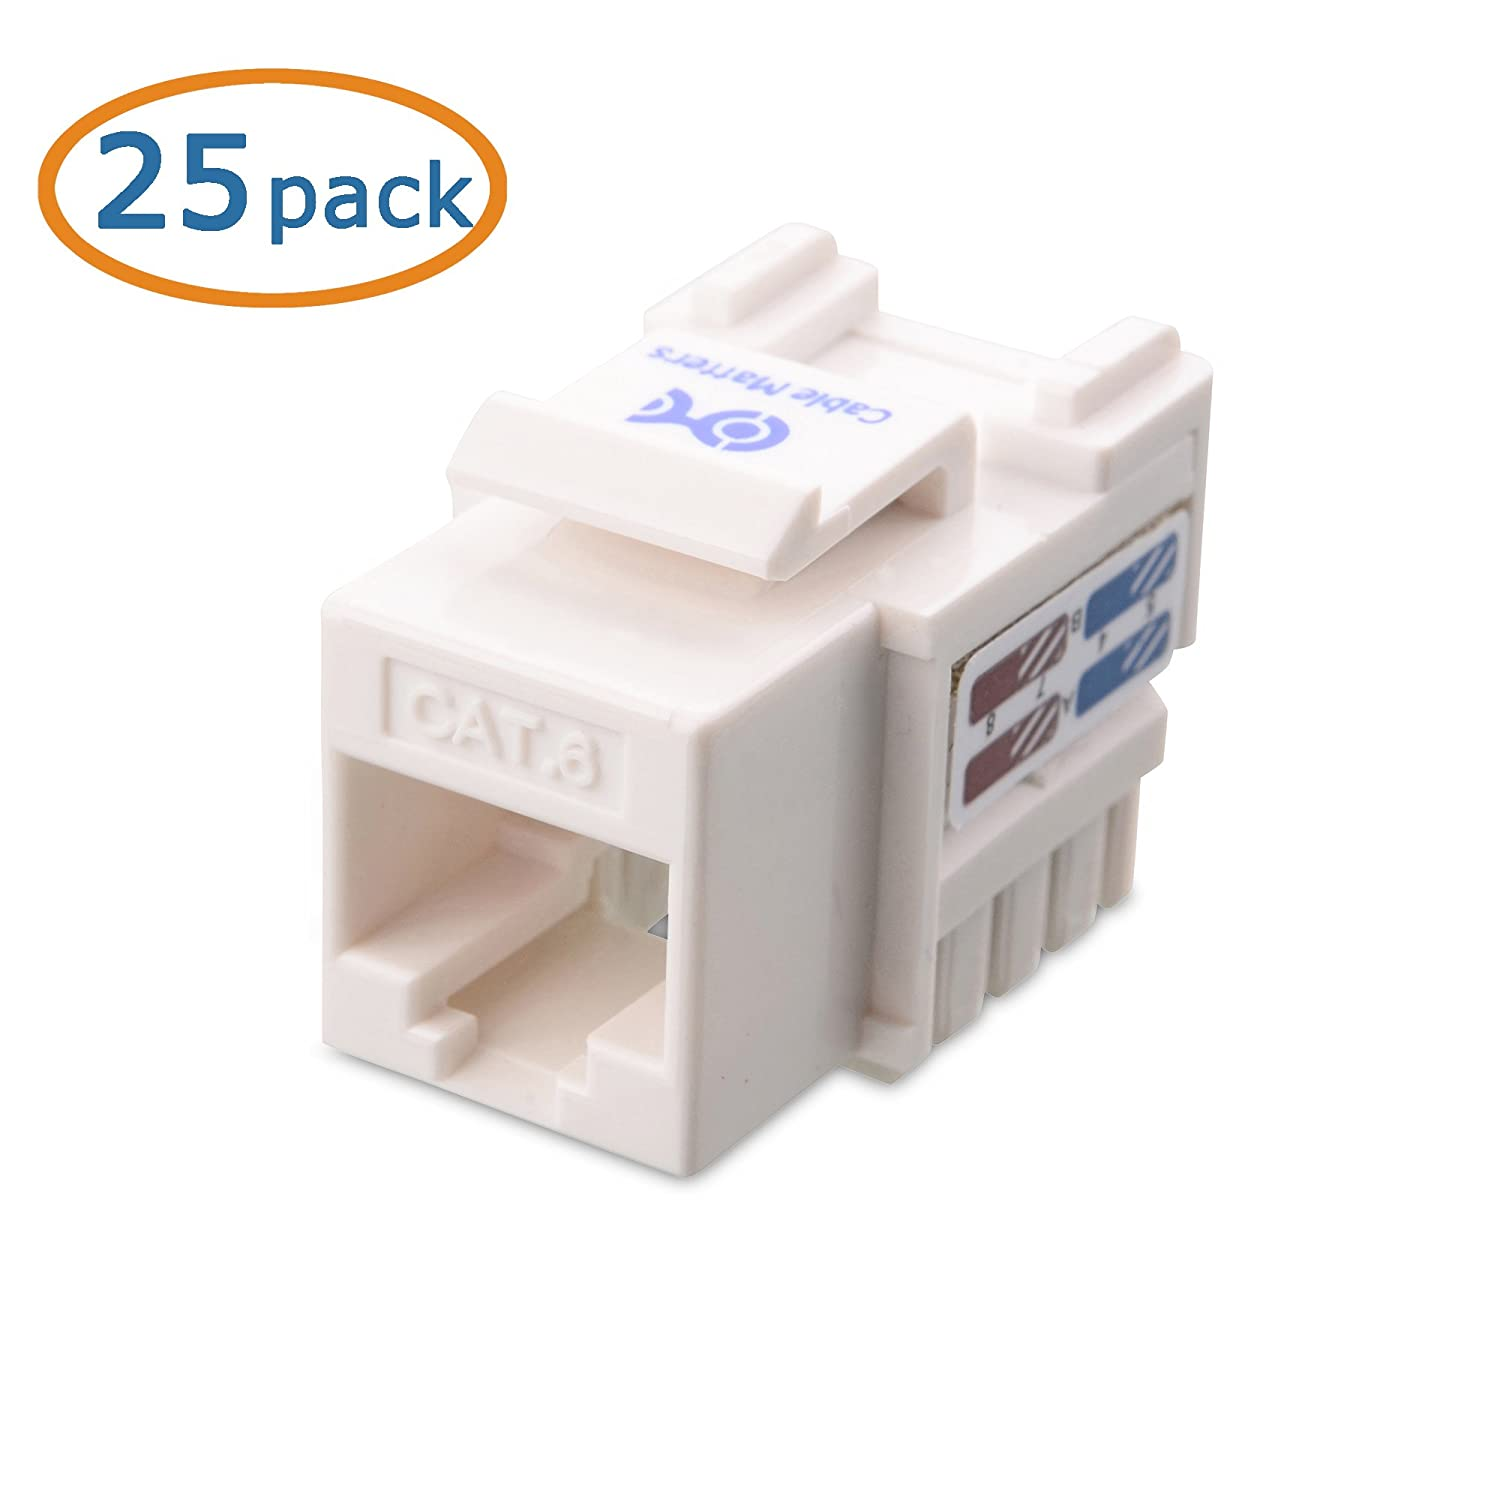 Ul Listed Cable Matters 25 Pack Cat6 Rj45 Keystone Jack In White 110 Block Wiring Diagram And Punch Down Stand Computers Tablets